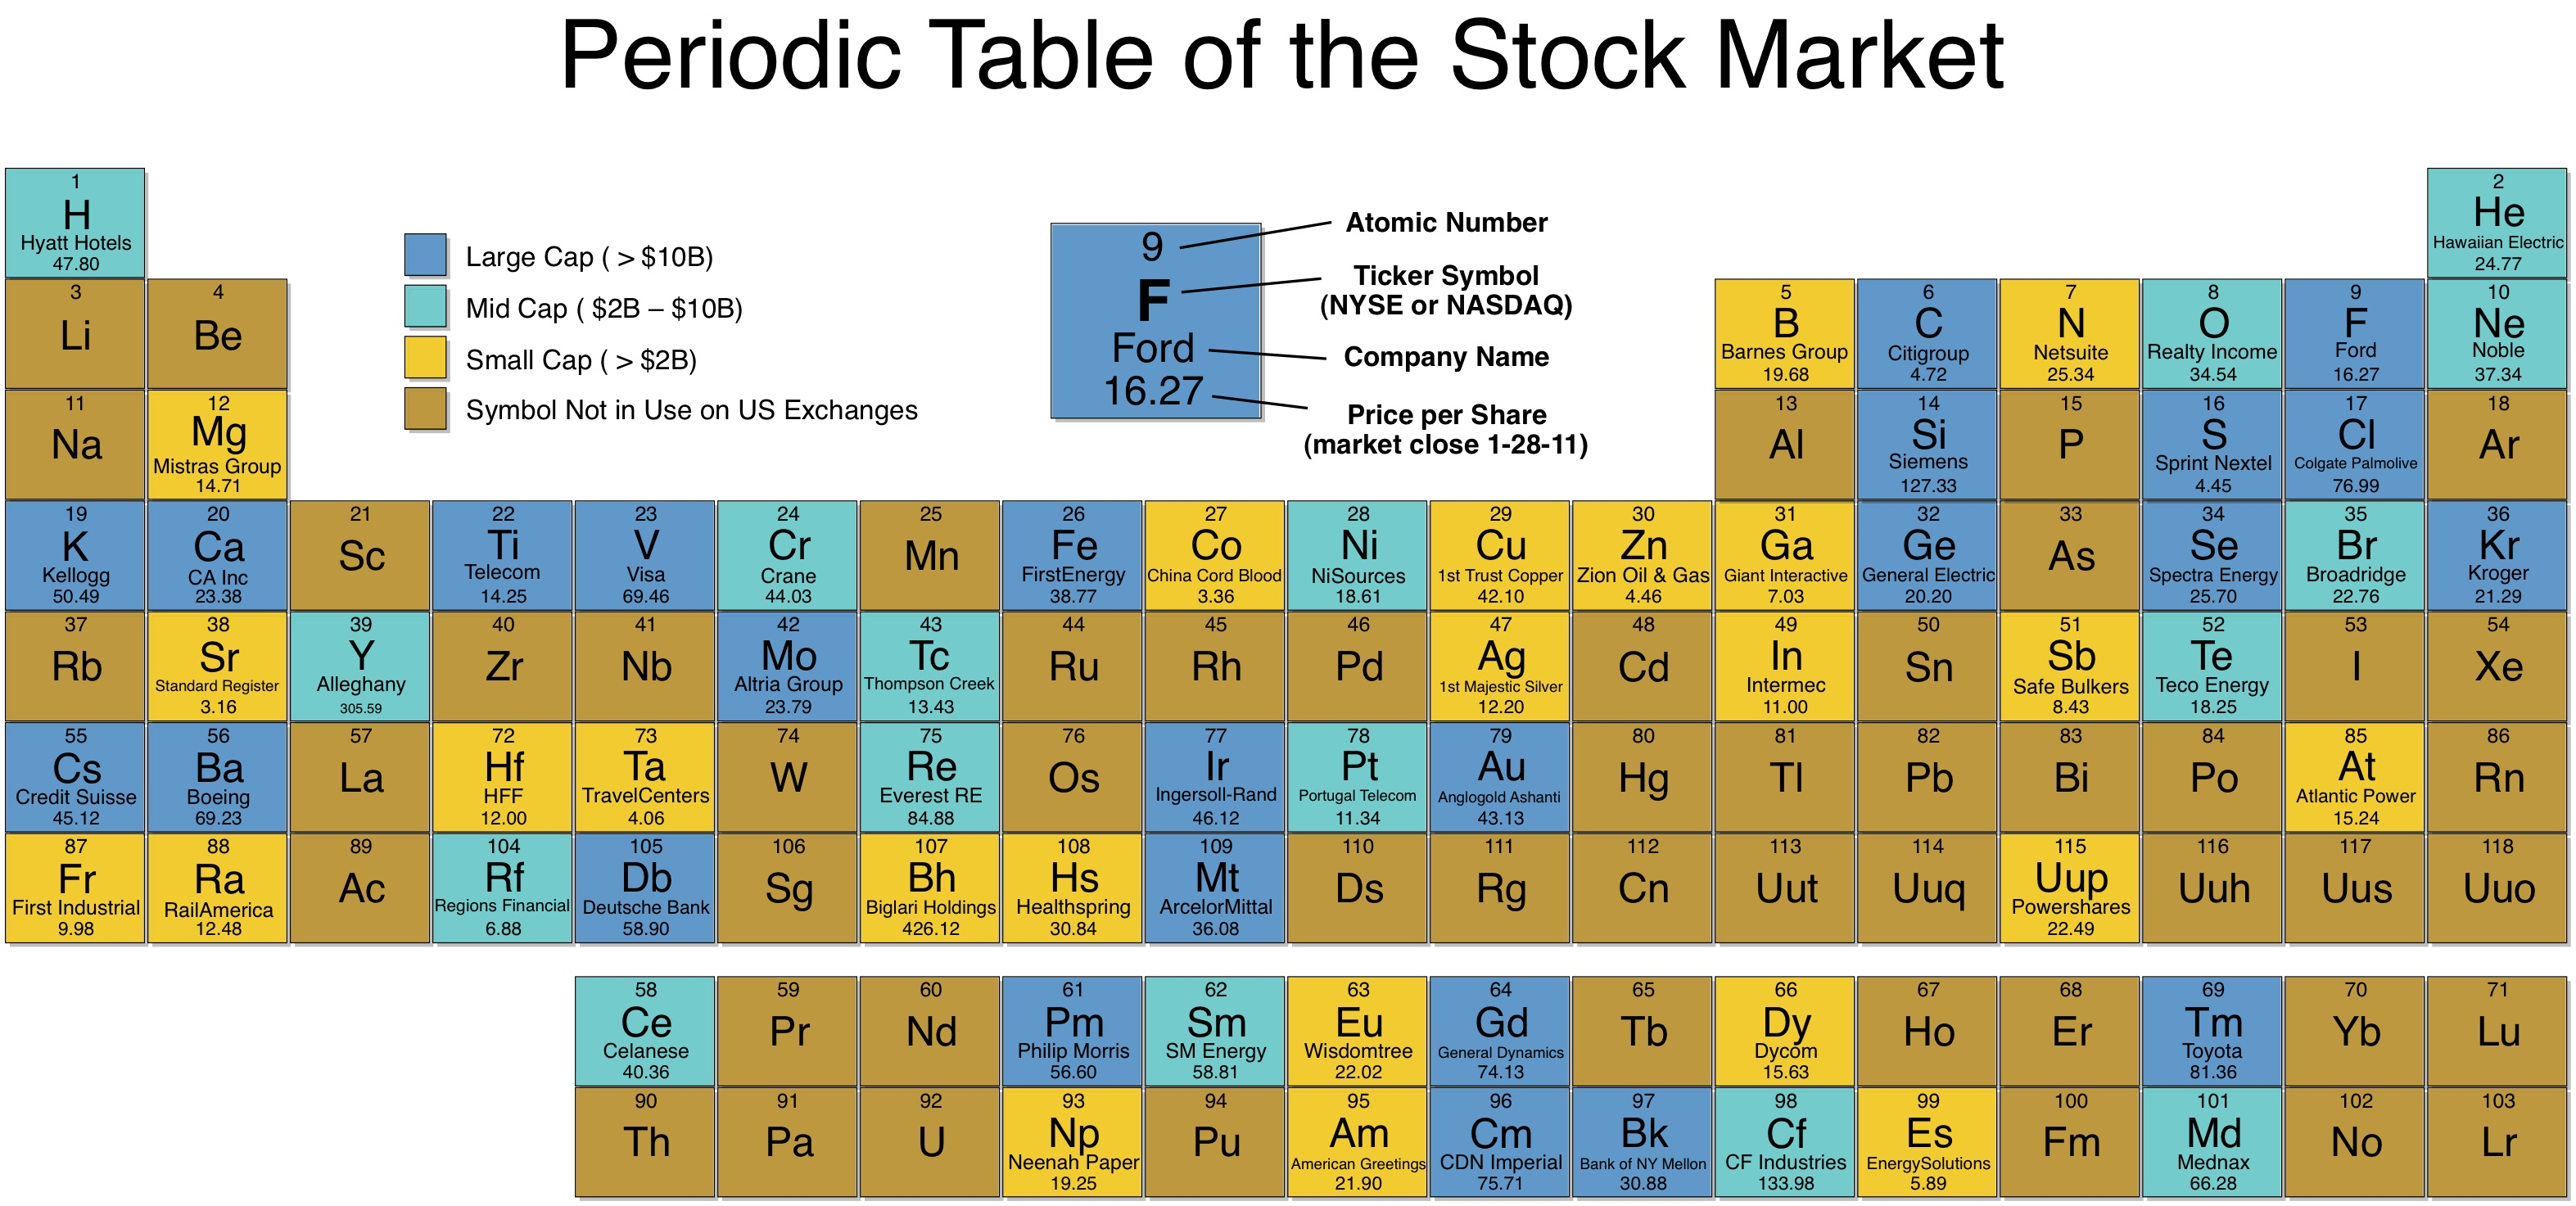 Periodic table of the stock market i can has science element symbols stock ticker symbols buycottarizona